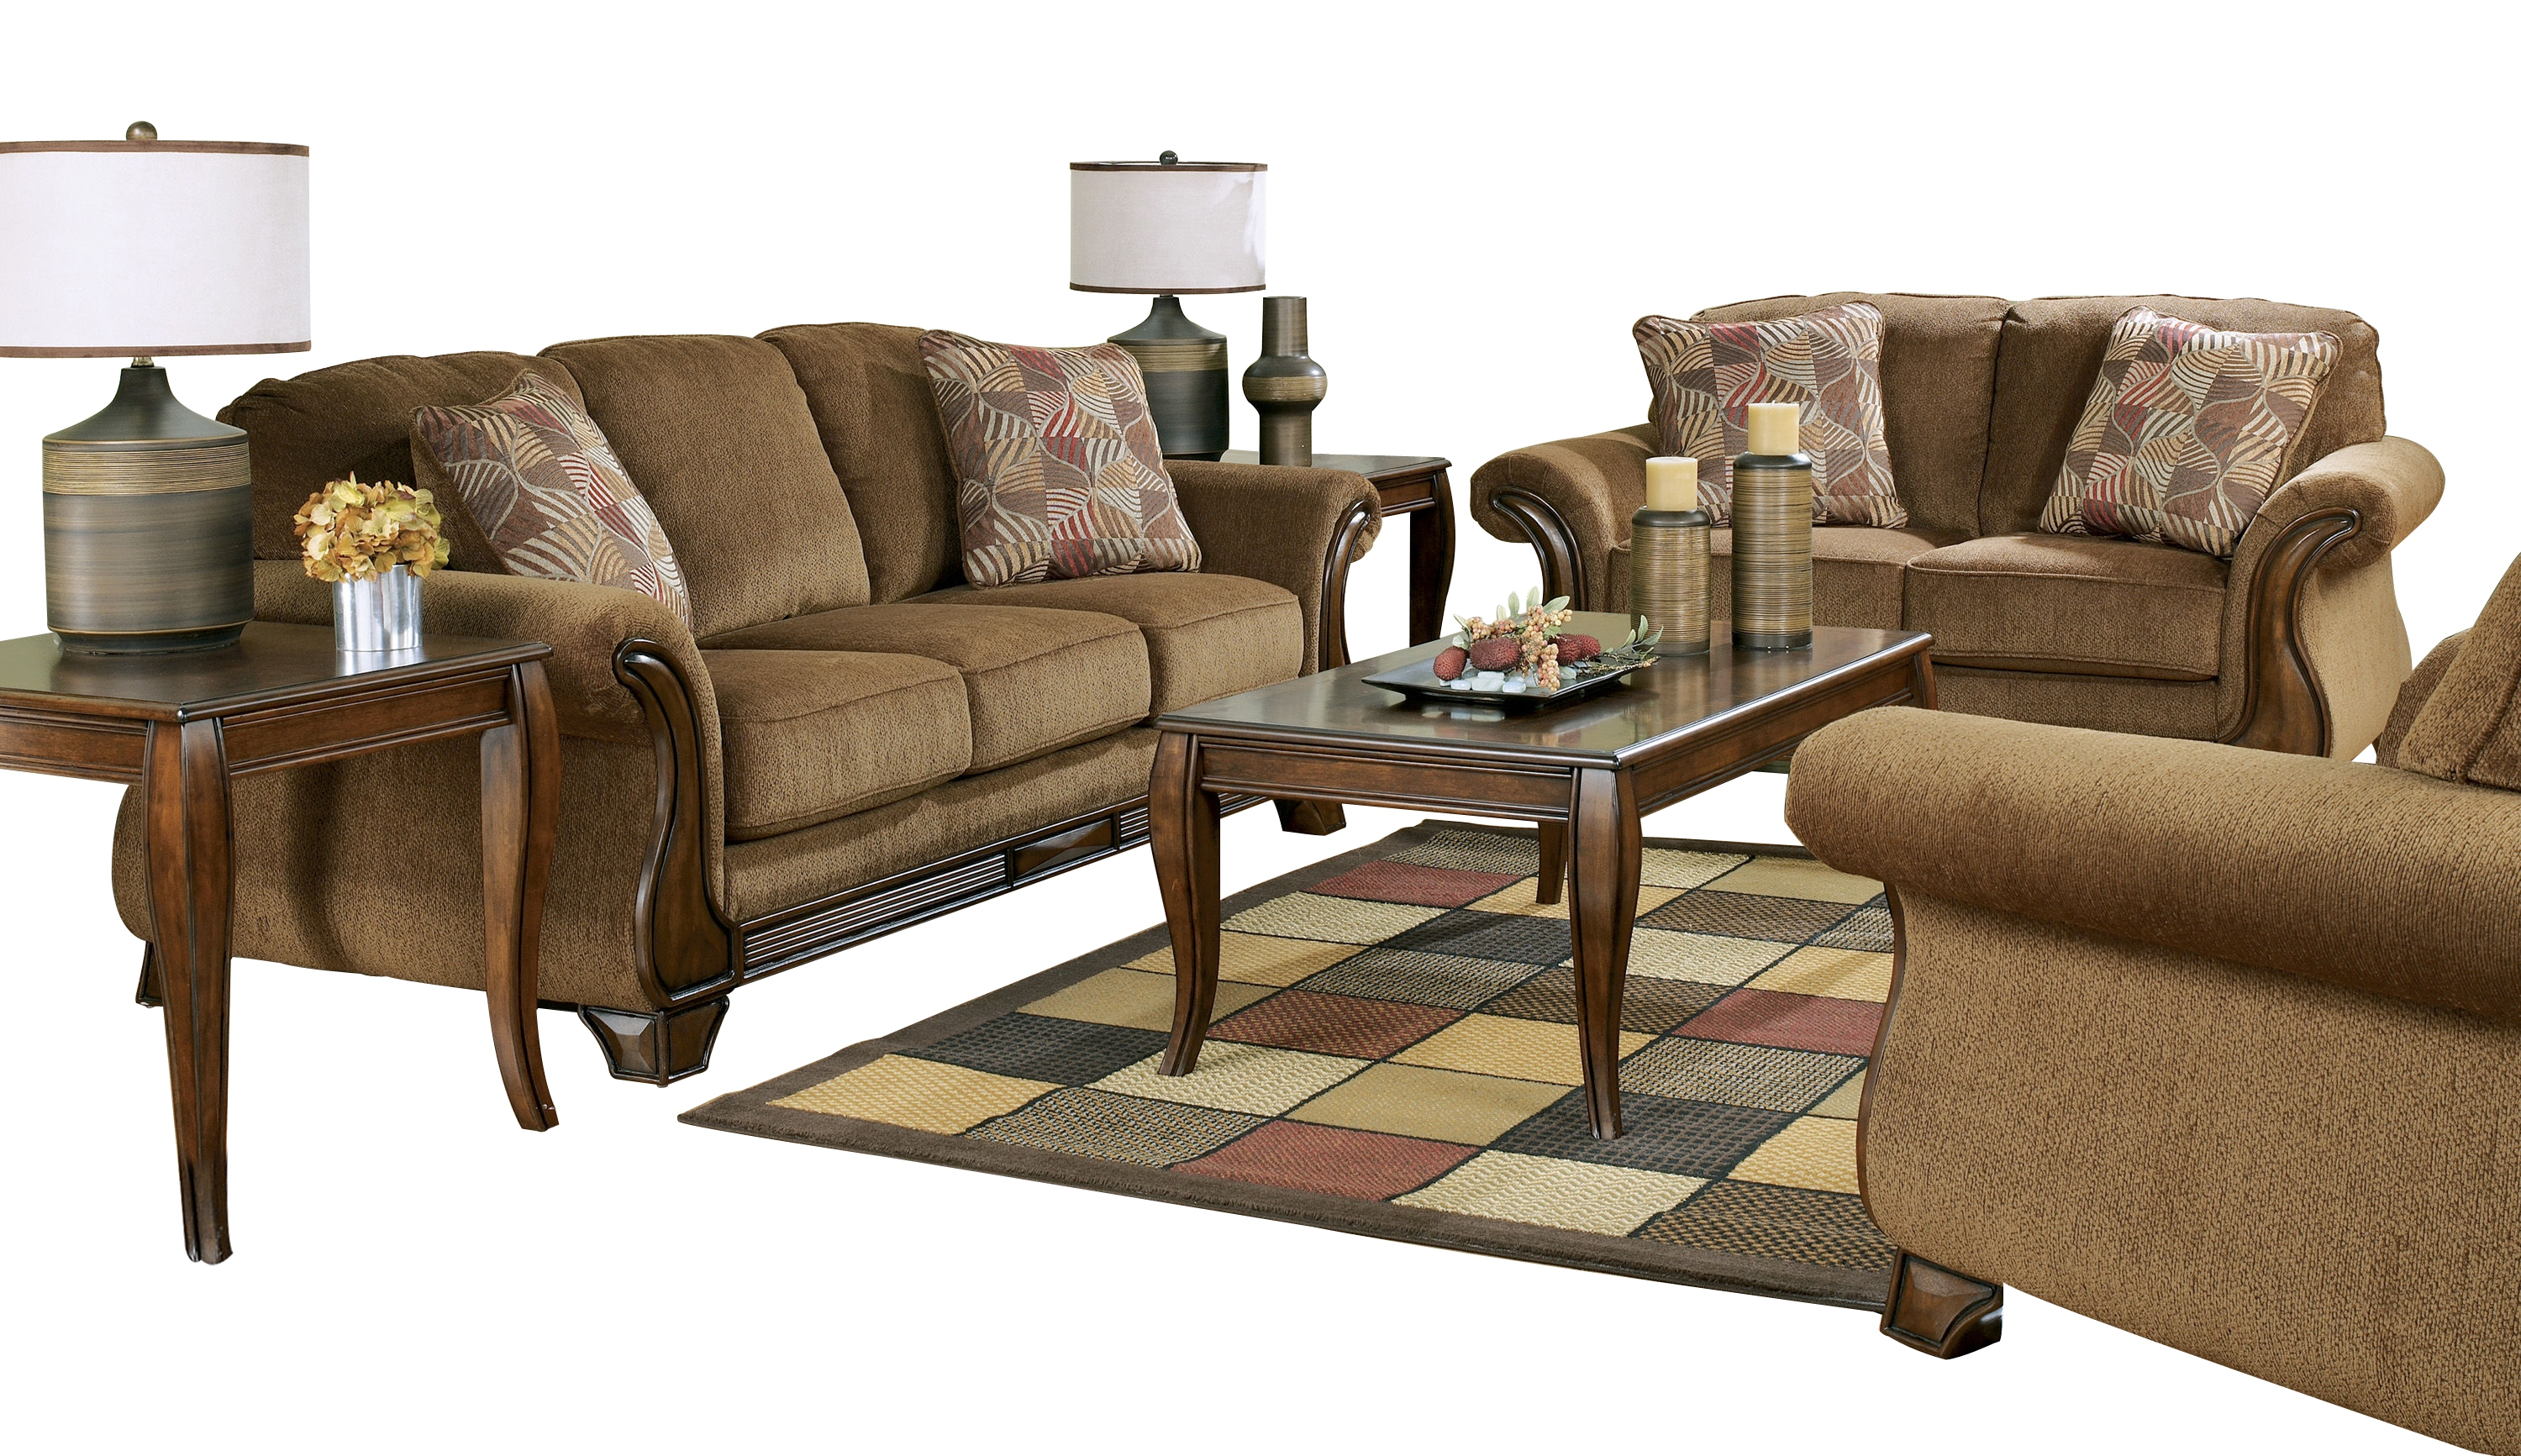 Ashley furniture montgomery mocha 3pc living room set the classy home for Montgomery mocha living room set